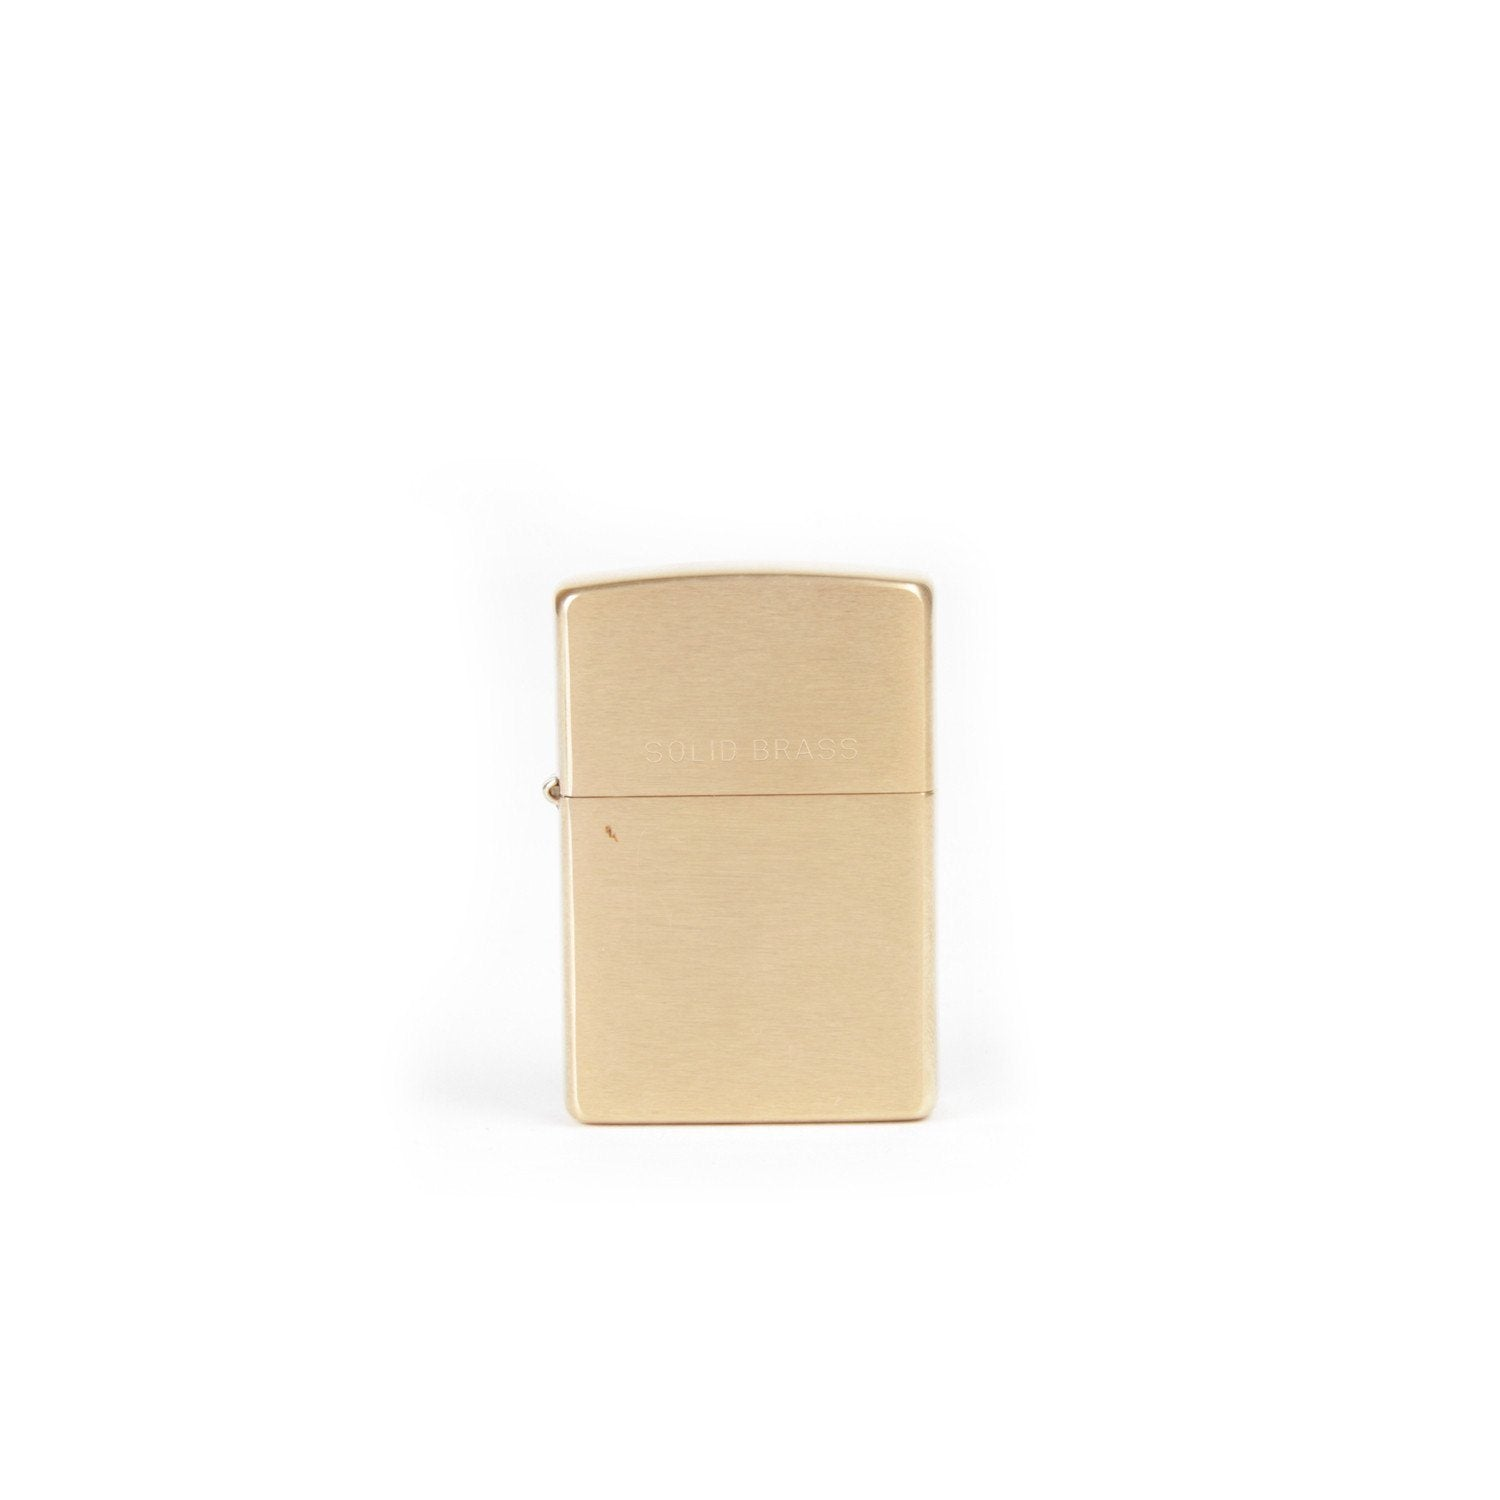 Zippo Classic Lighter (Brushed Brass)